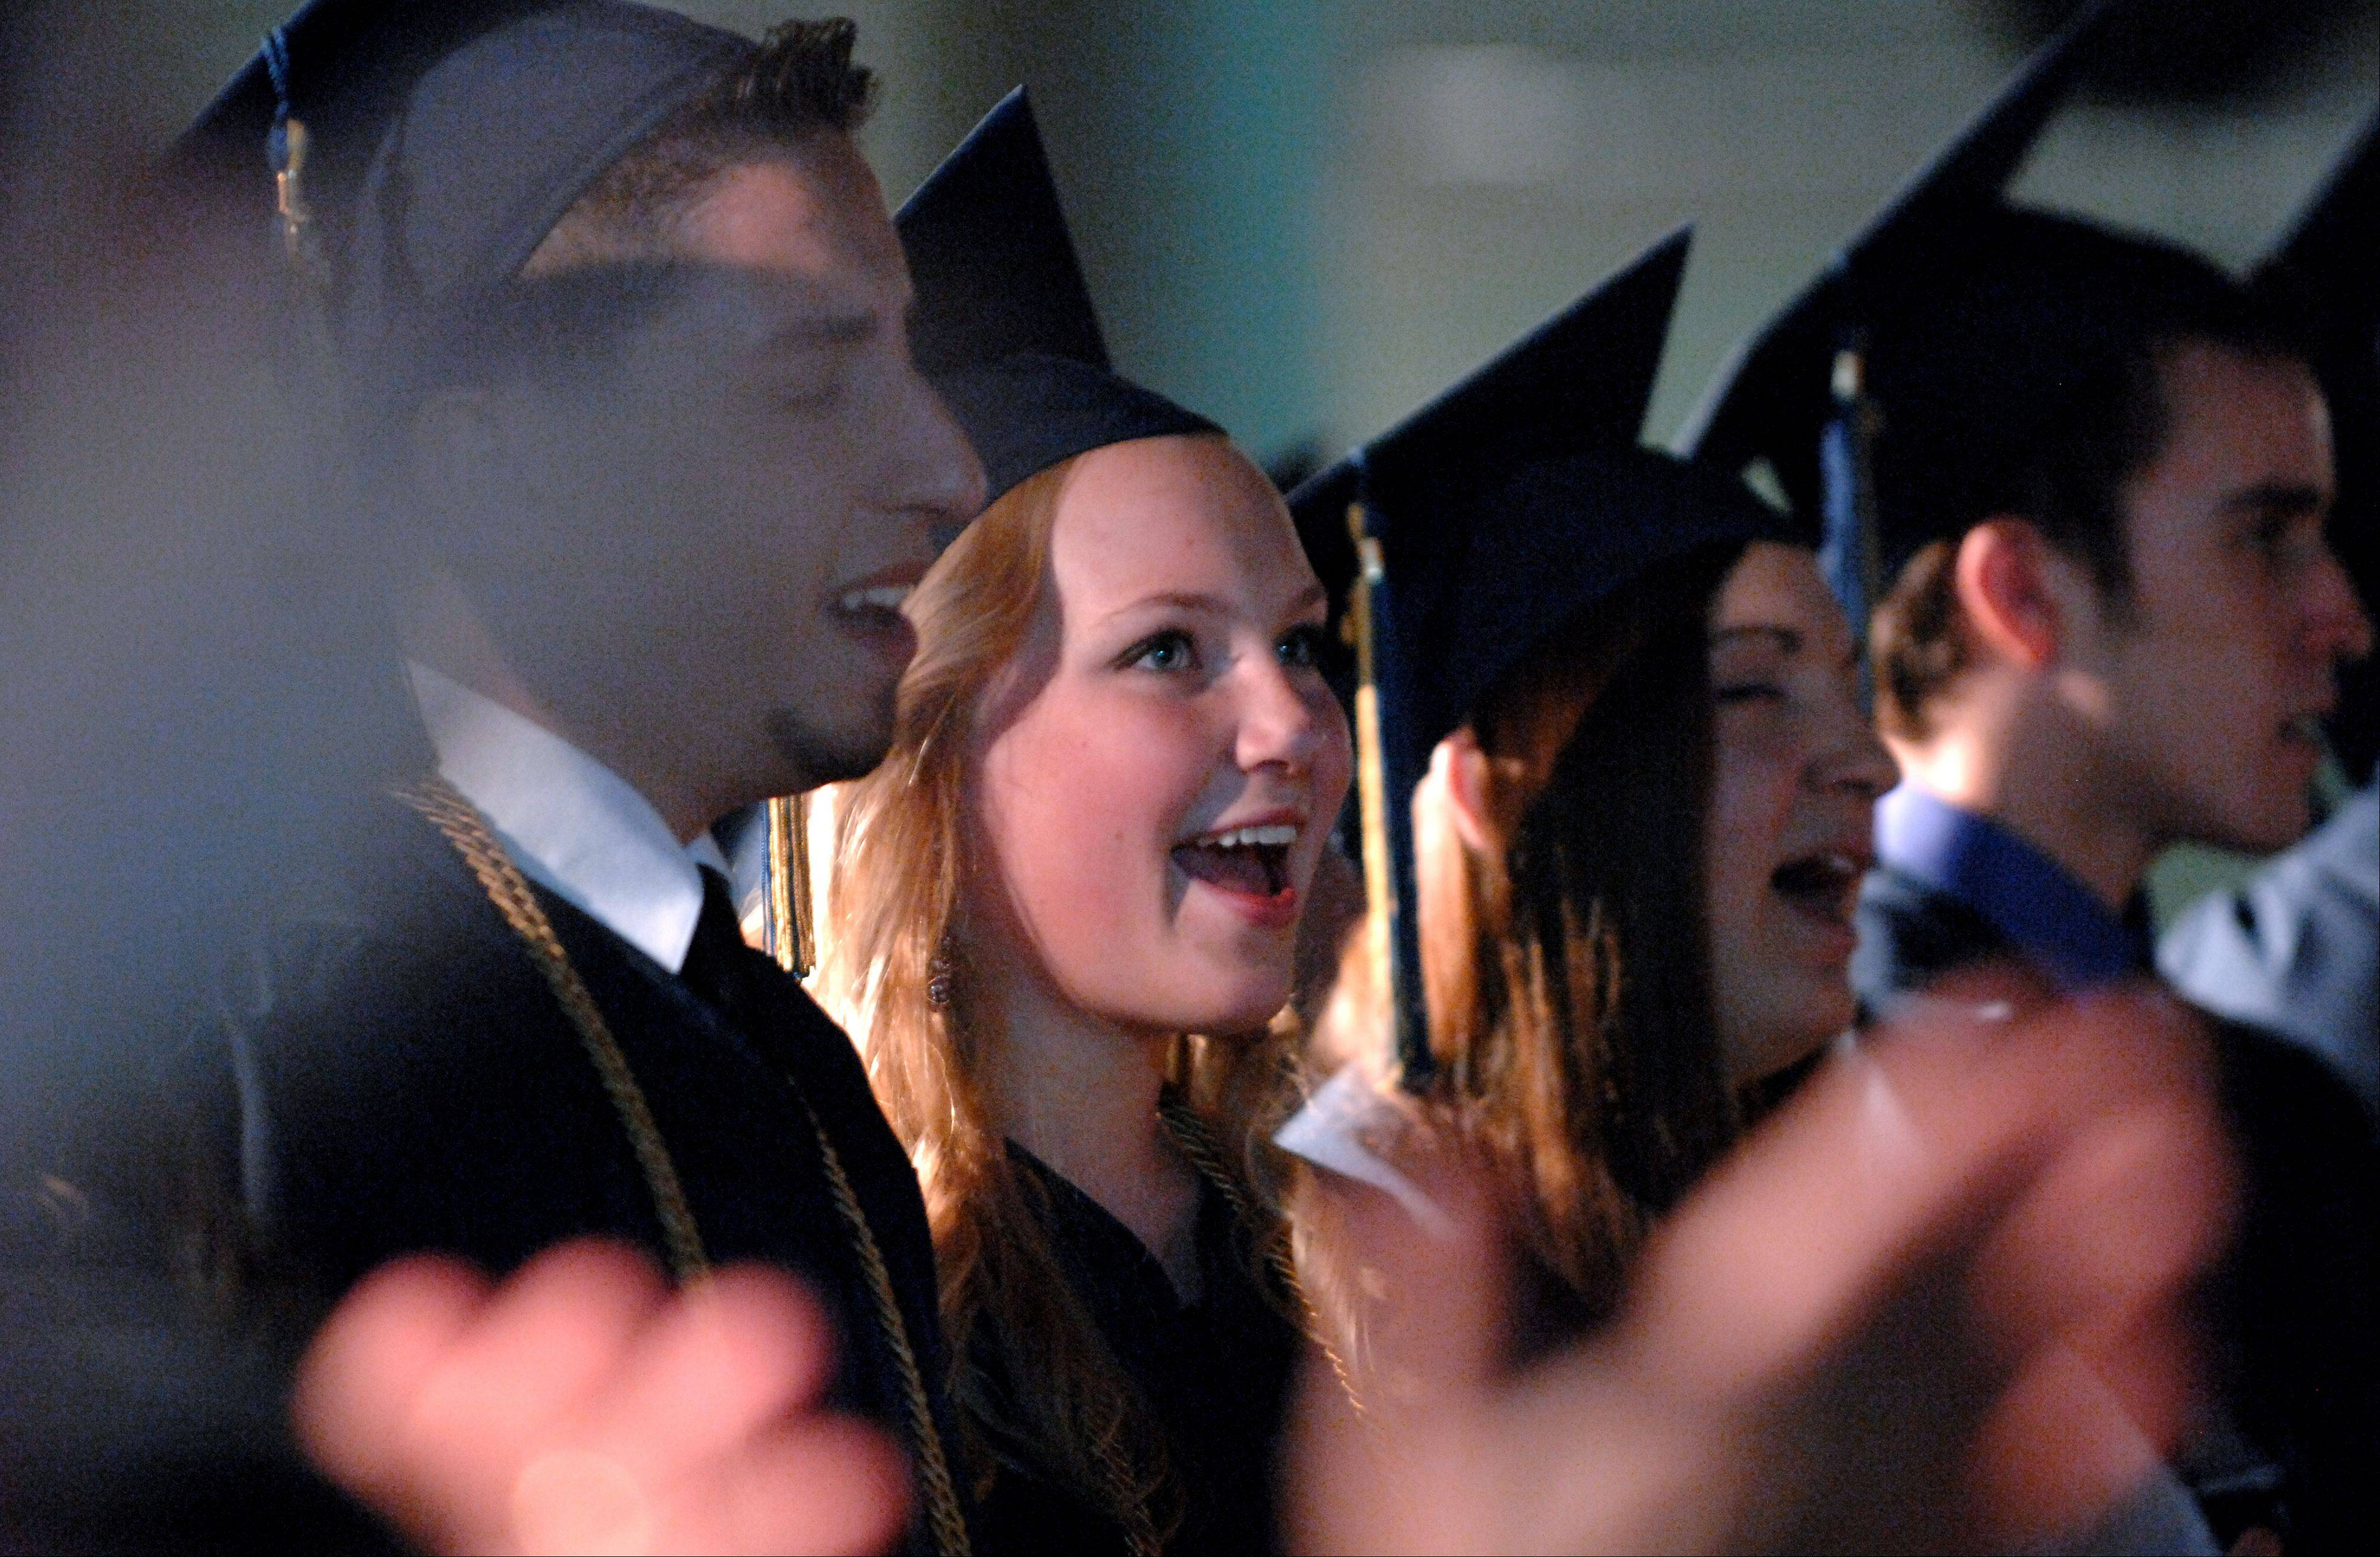 Cayla Aronsen and her fellow seniors sing a worship song during the Harvest Christian Academy commencement ceremony Saturday in Elgin.